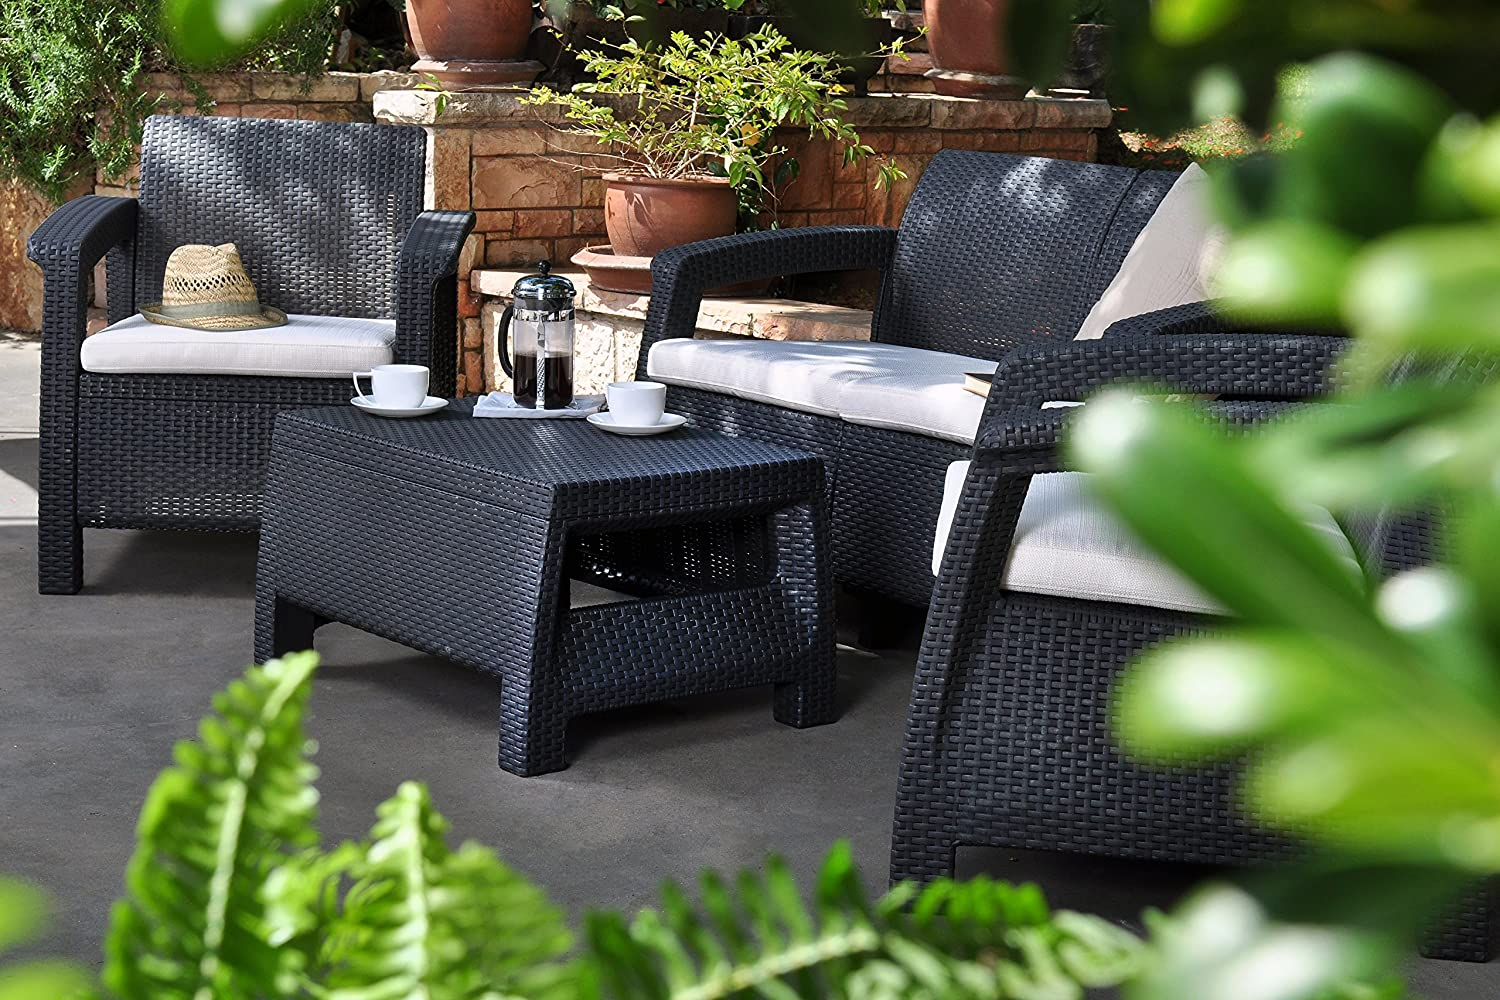 Keter Corfu Outdoor 4 Seater Rattan Furniture Set With Accent Table    Graphite With Cream Cushions: Amazon.co.uk: Garden U0026 Outdoors